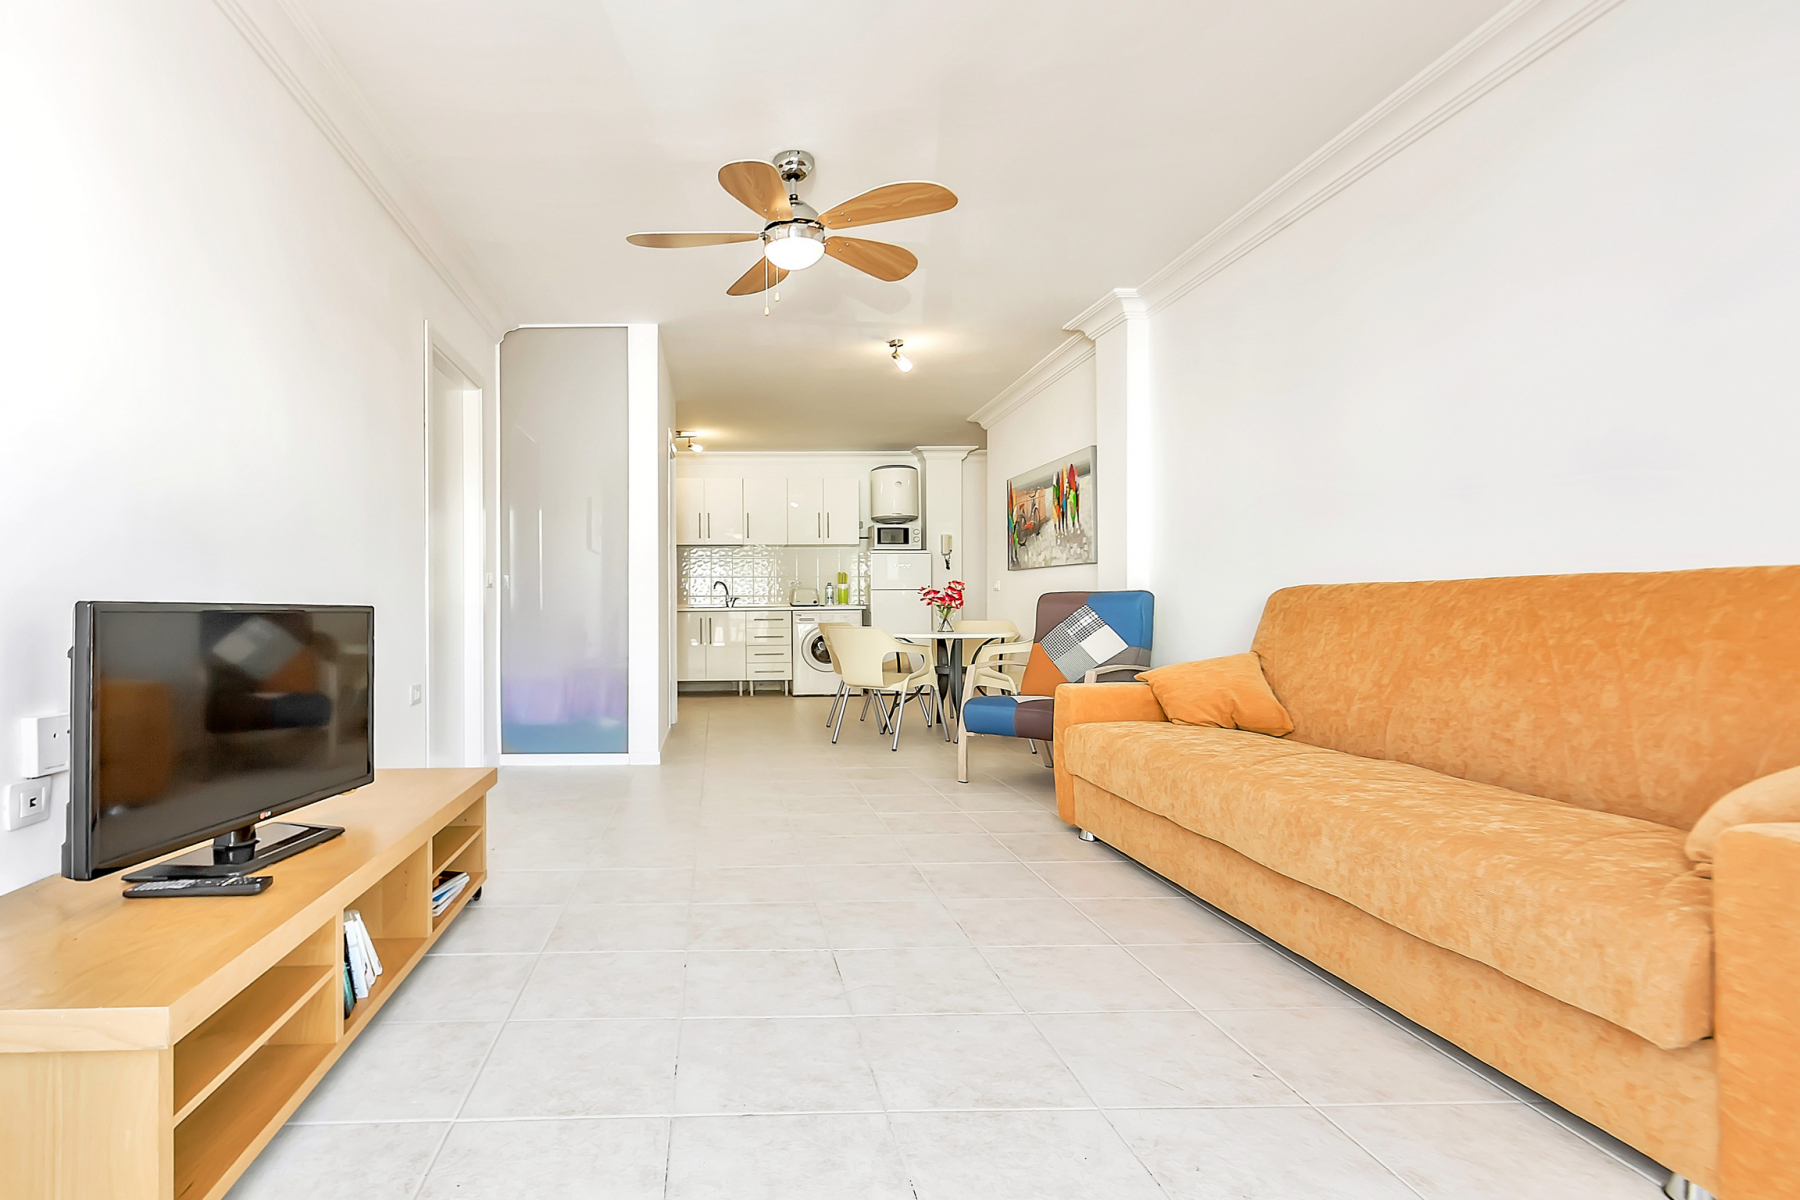 Properties for Sale in Tenerife, Canary Islands, Spain | SylkWayStar Real Estate. EXCLUSIVE OFFER. Image-26320